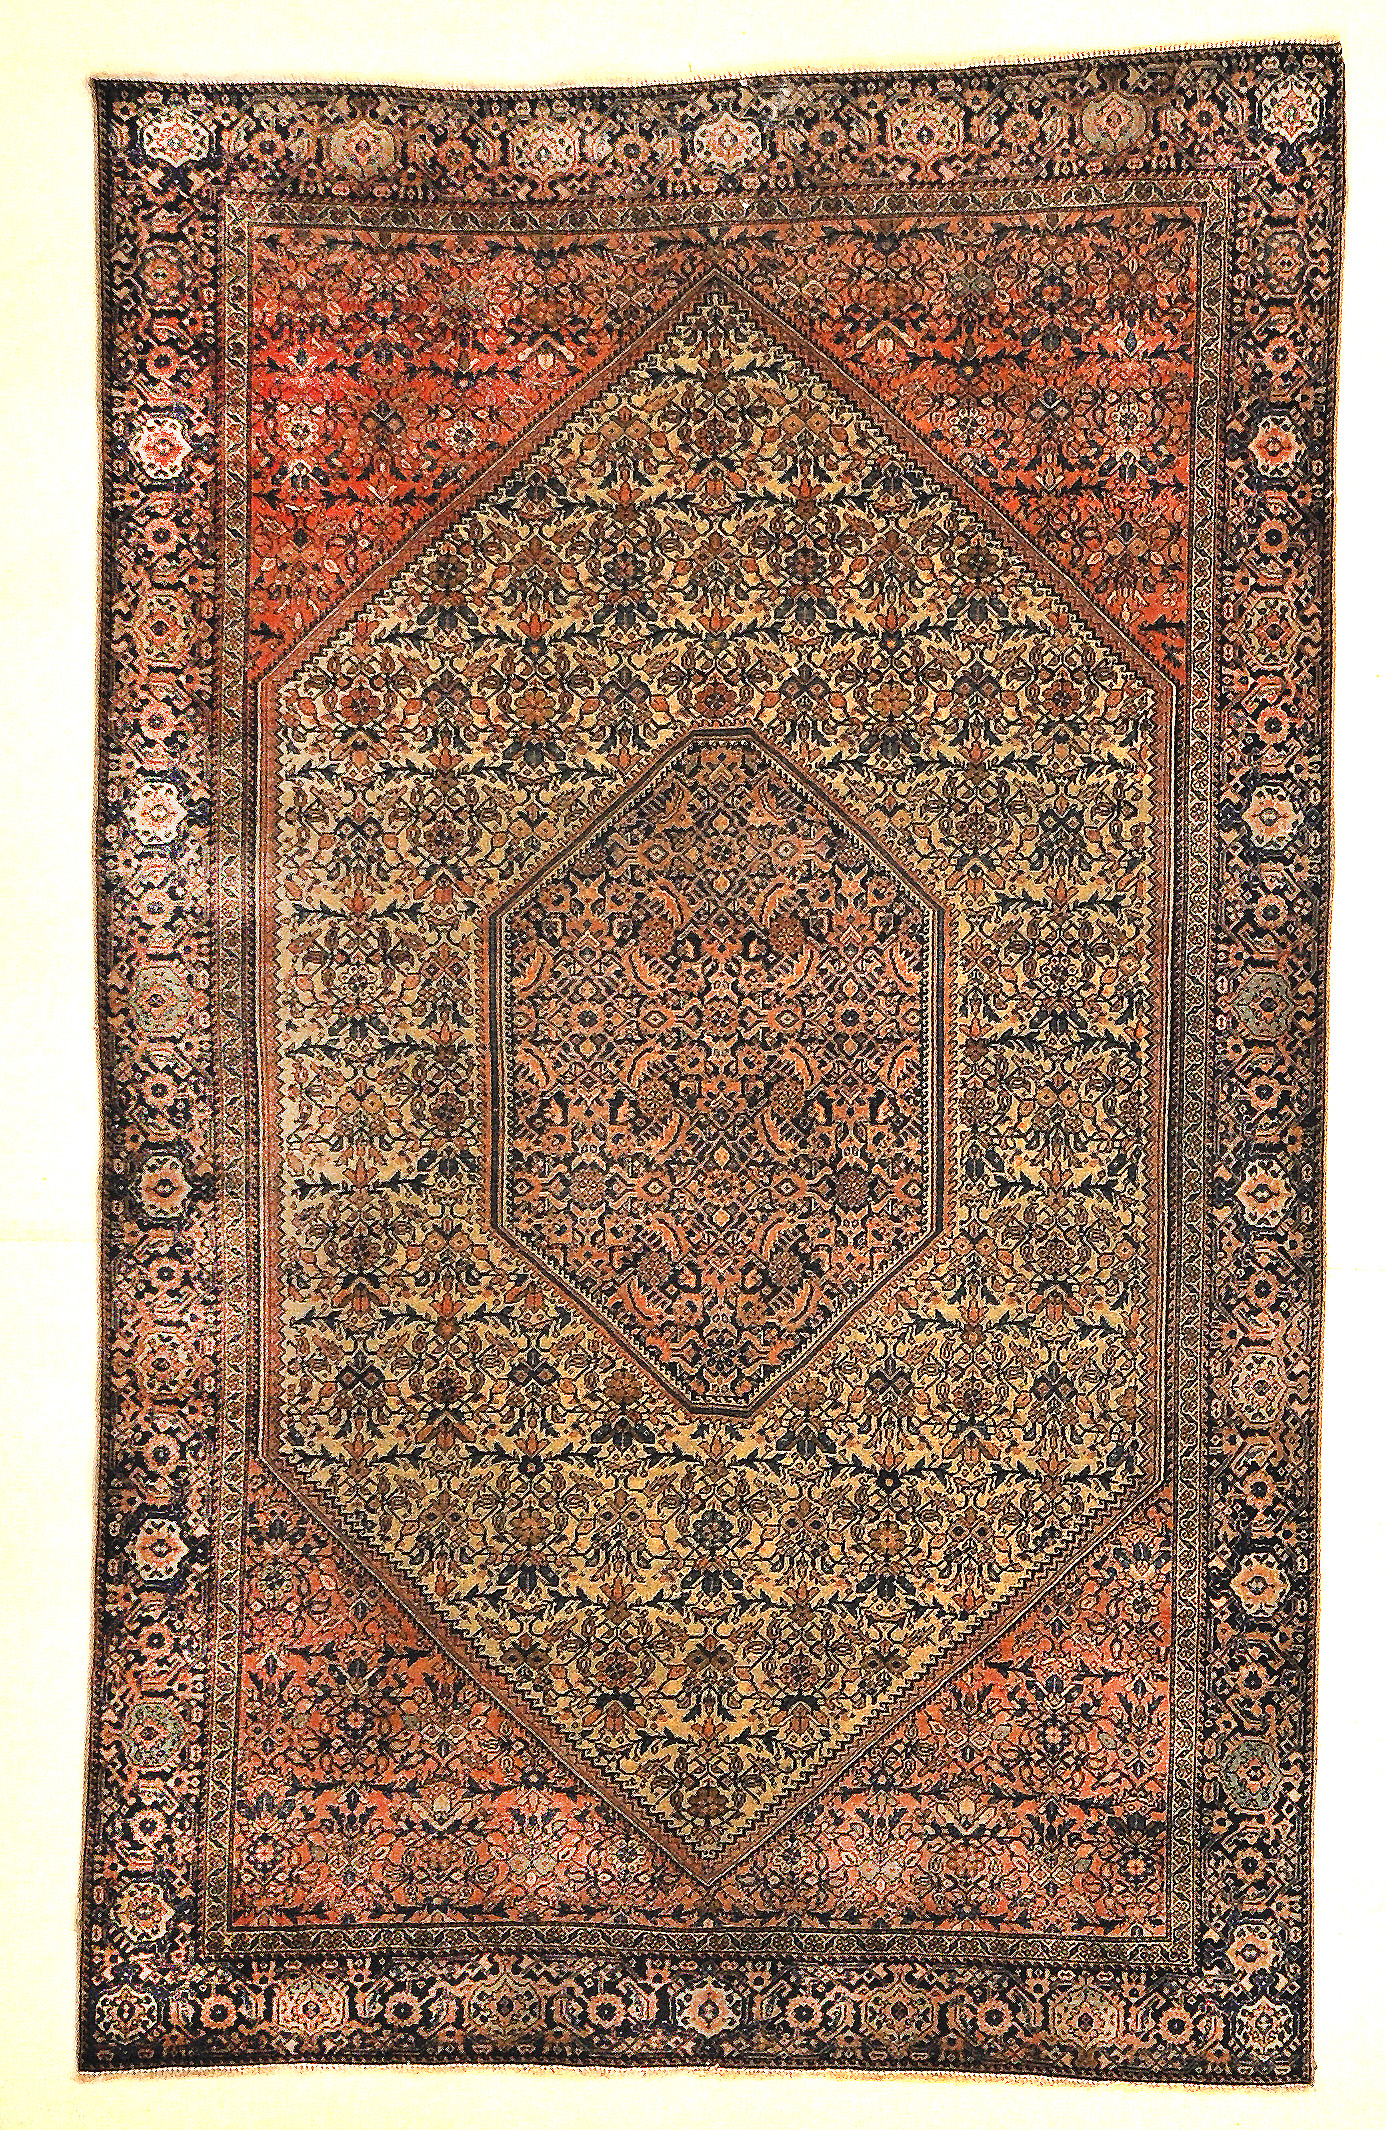 Antique Sarouk Farahan with Medallion and Ivory Pink and Red Detail Genuine Authentic Woven Carpet Art Santa Barbara Design Center